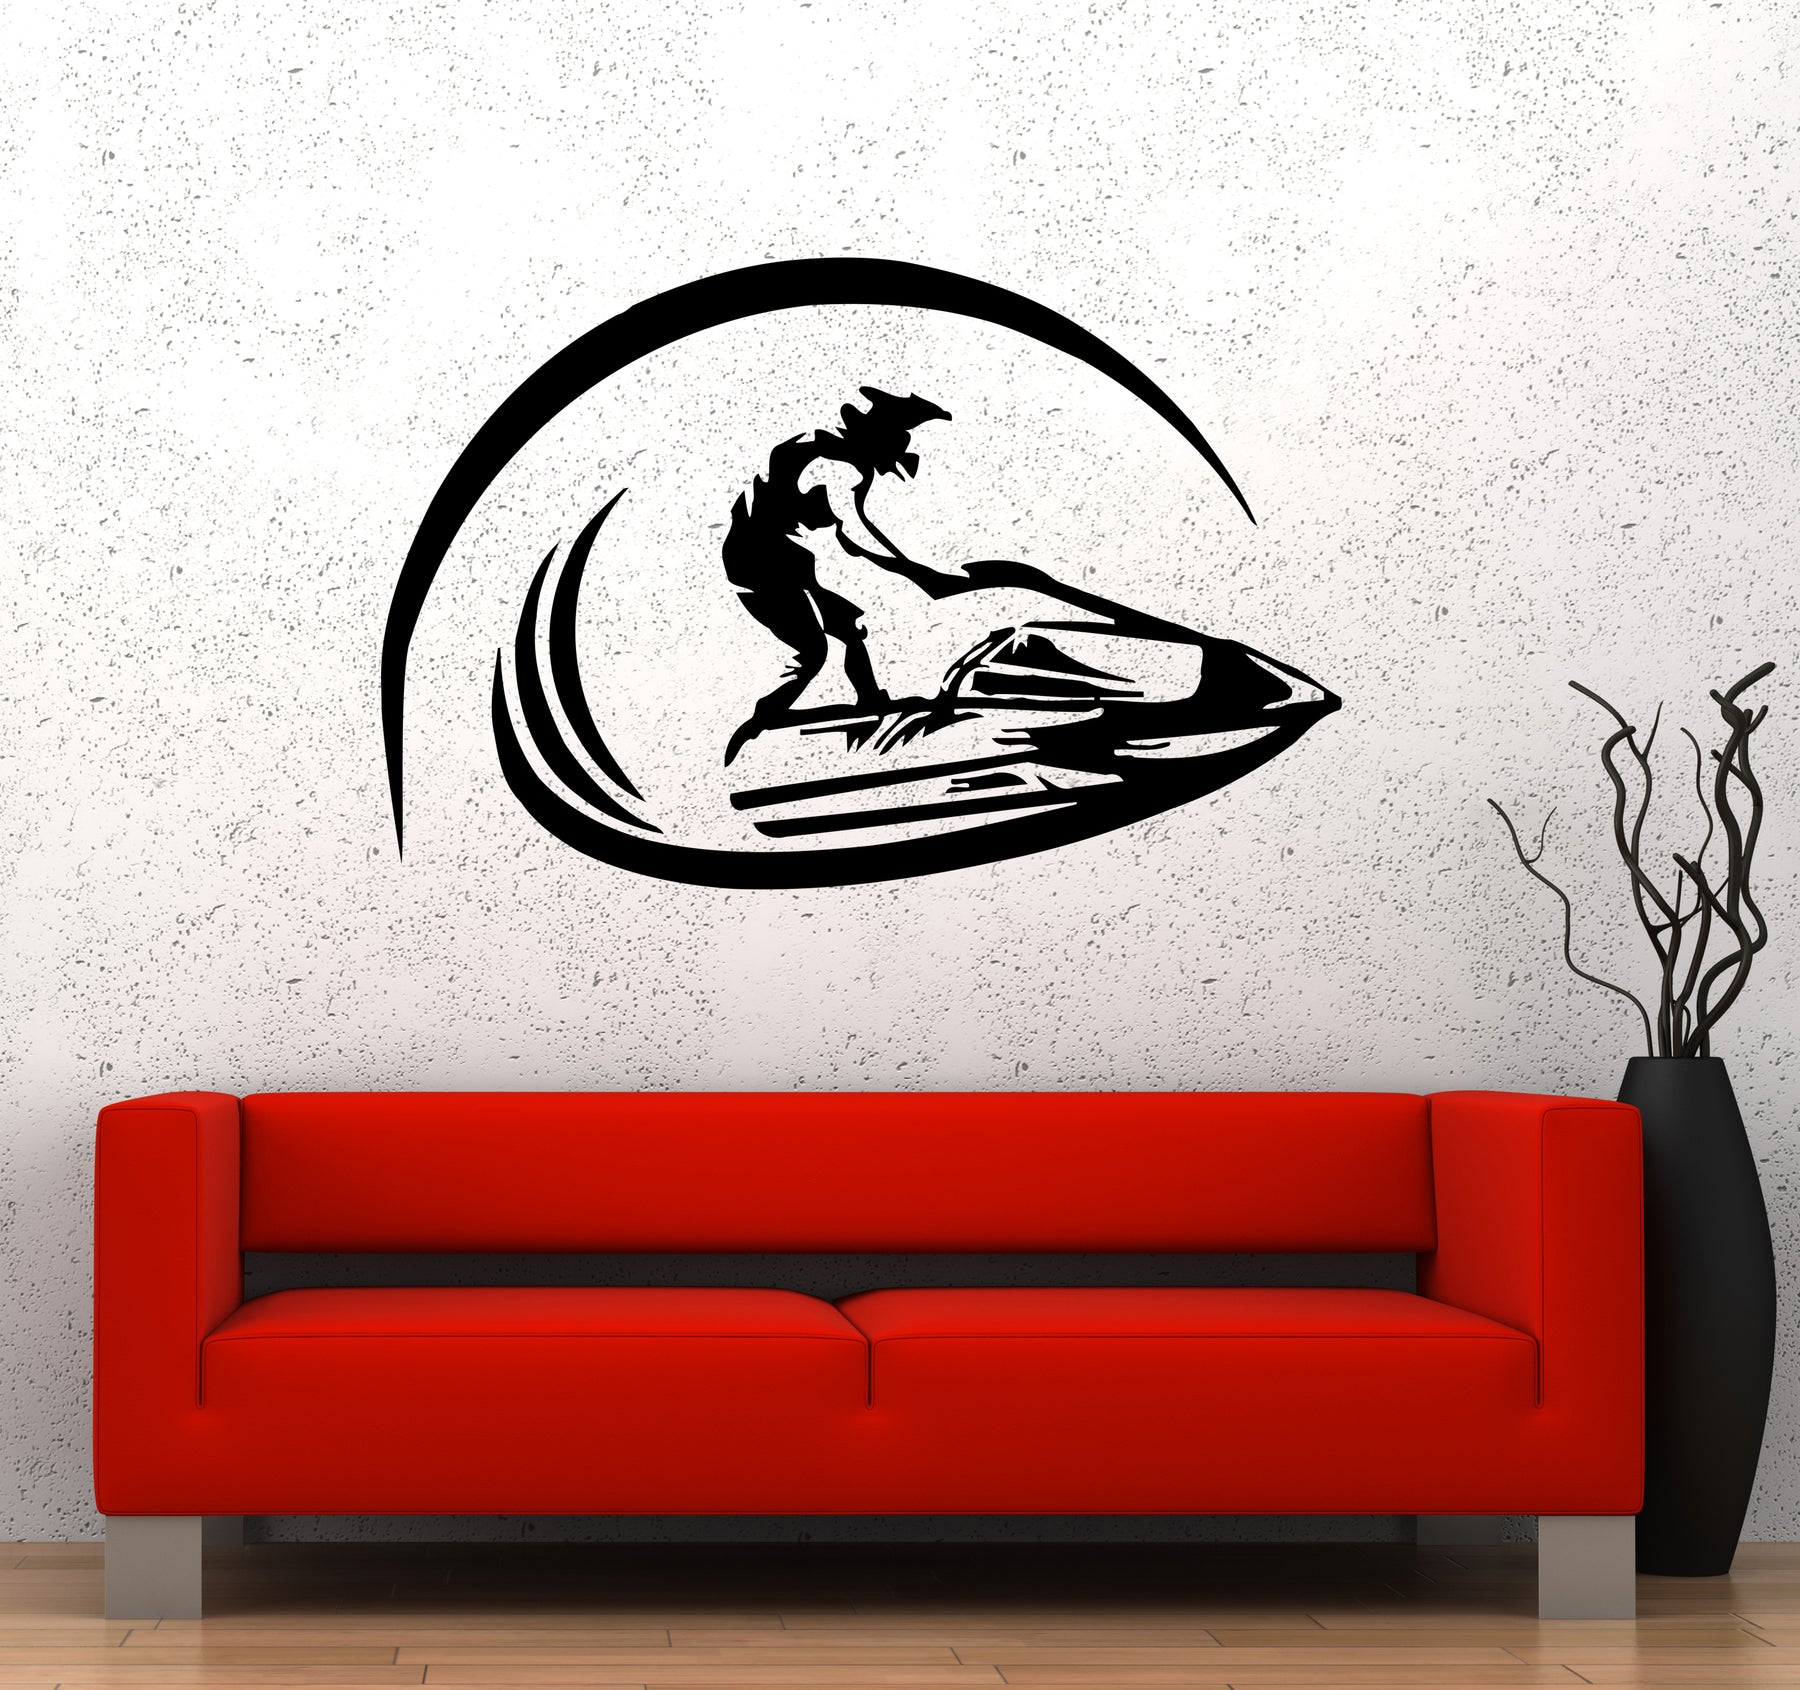 Wall Decal Jet Ski Extreme Sports Water Race Speed Vinyl Sticker (ed1678)